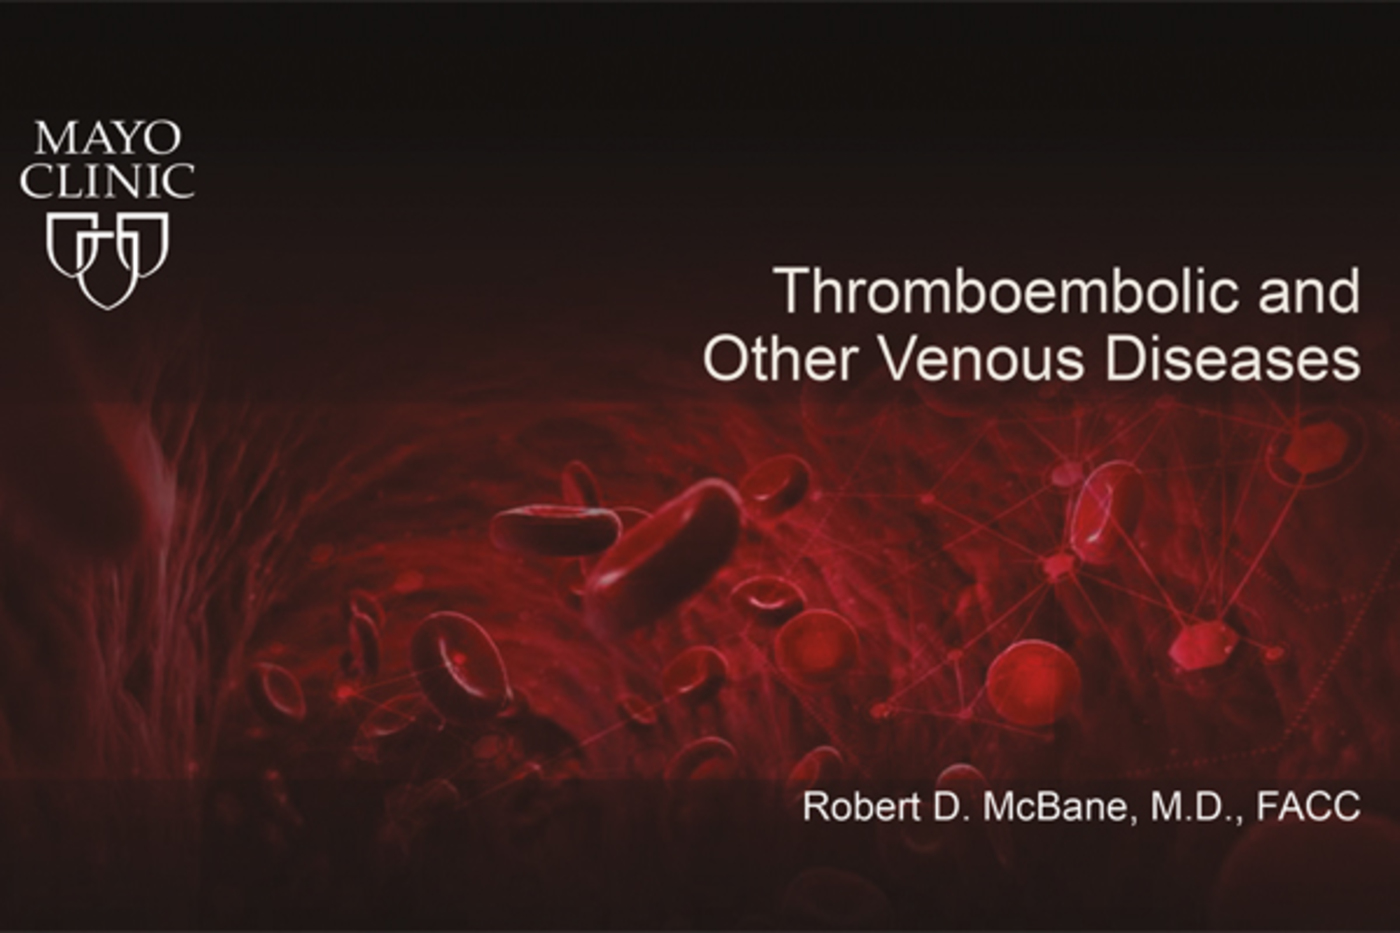 Thromboembolic and Other Venous Diseases